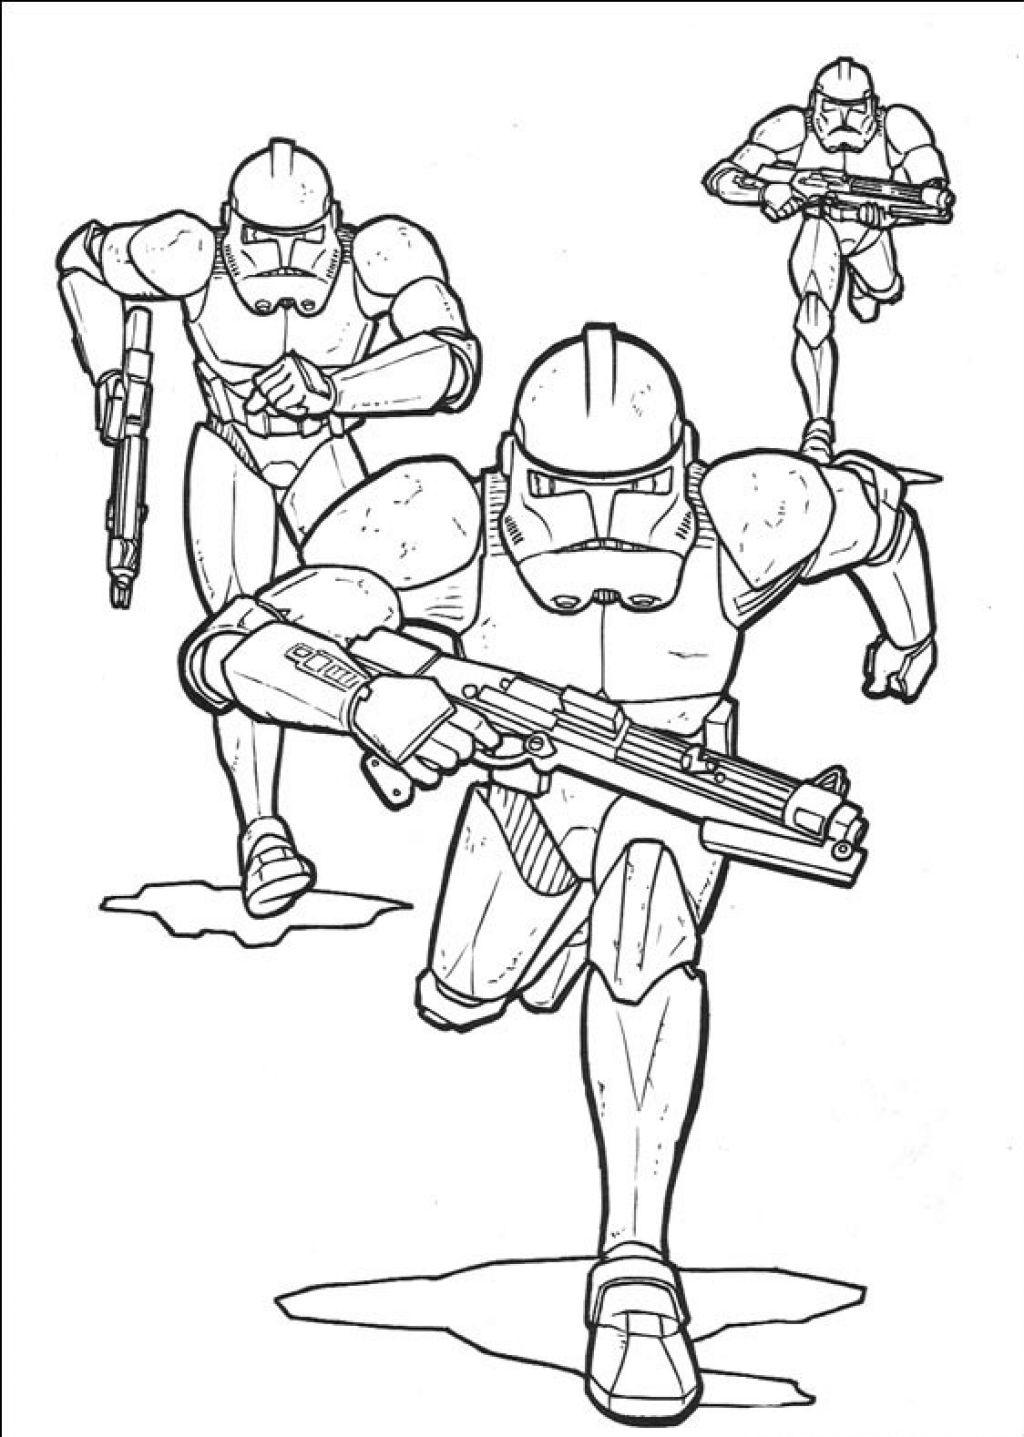 Star Wars Coloring Pages Free Printable Star Wars Coloring Pages Download Of New Coloring Pages Star Wars Printable